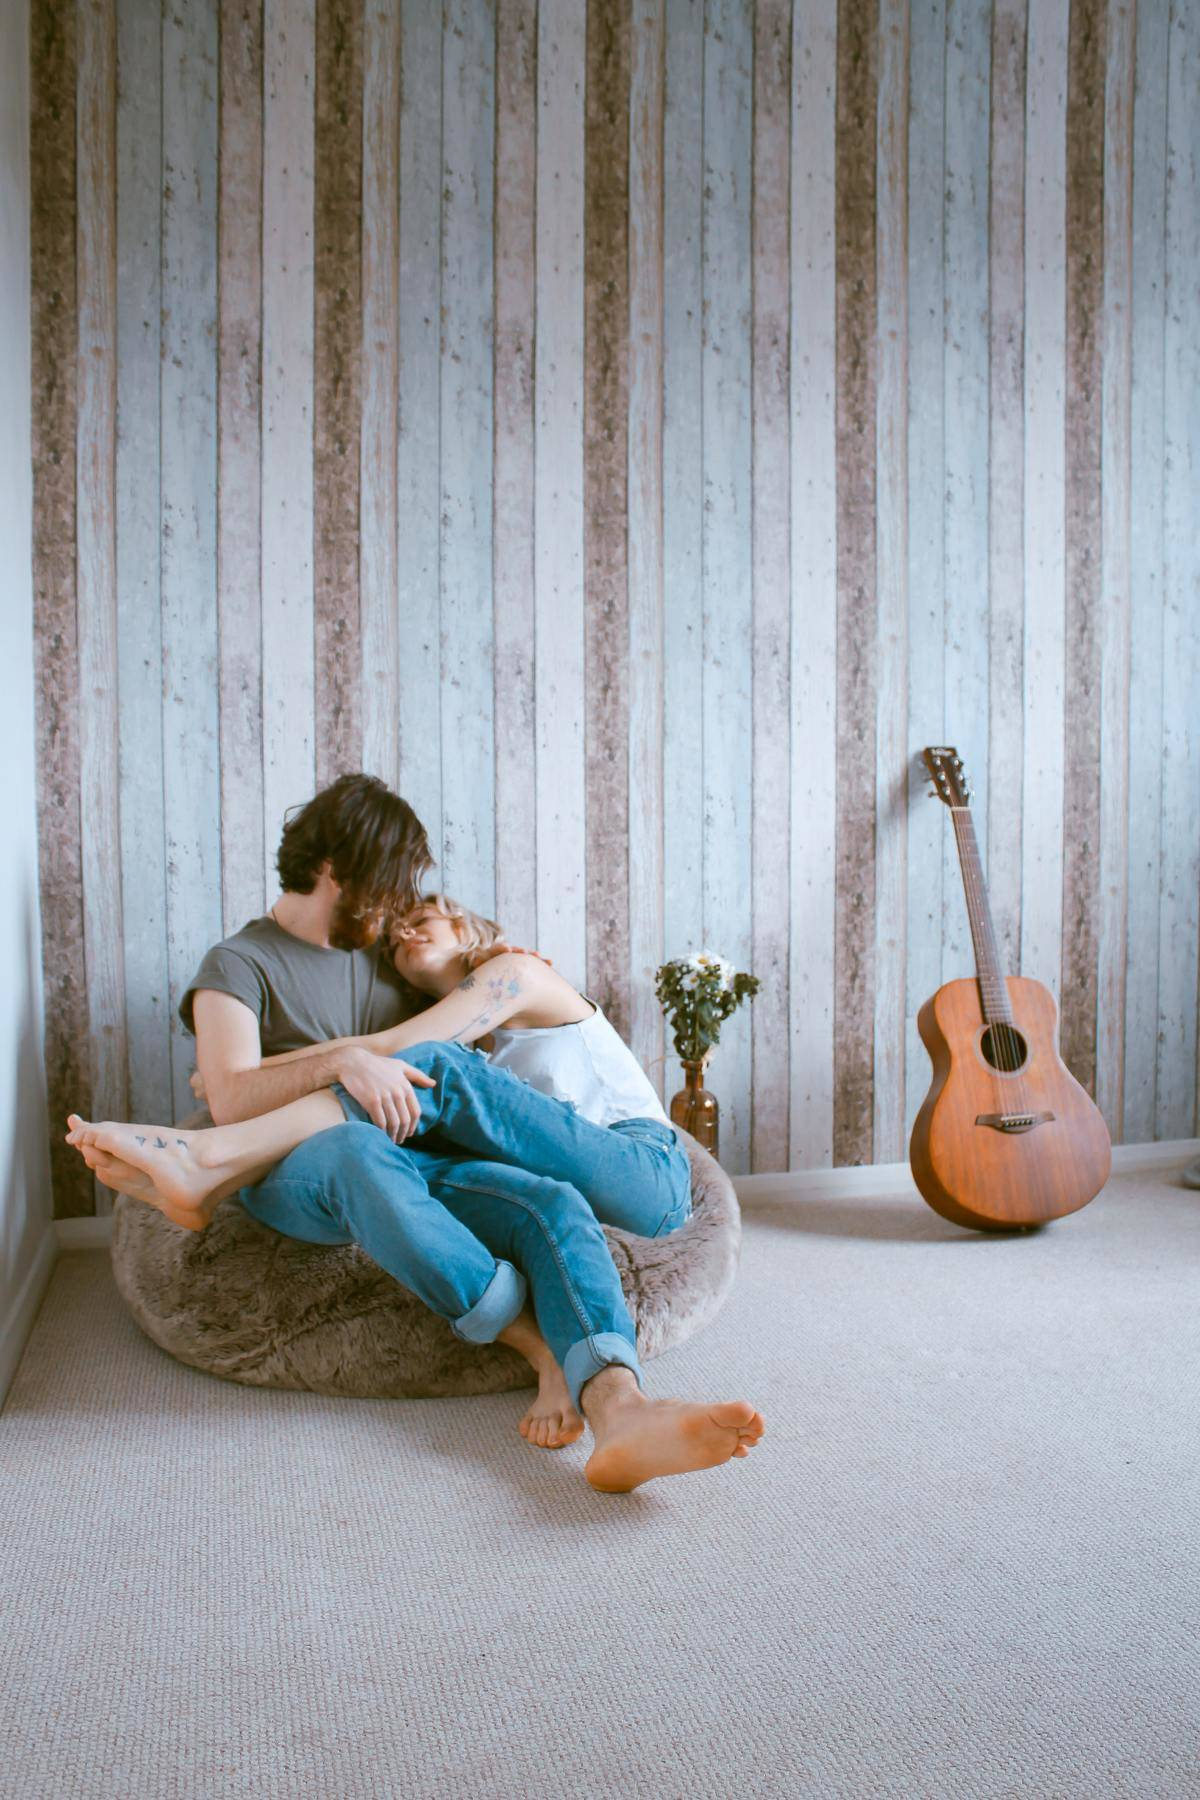 man and woman sit on the couch by a guitar and striped wall